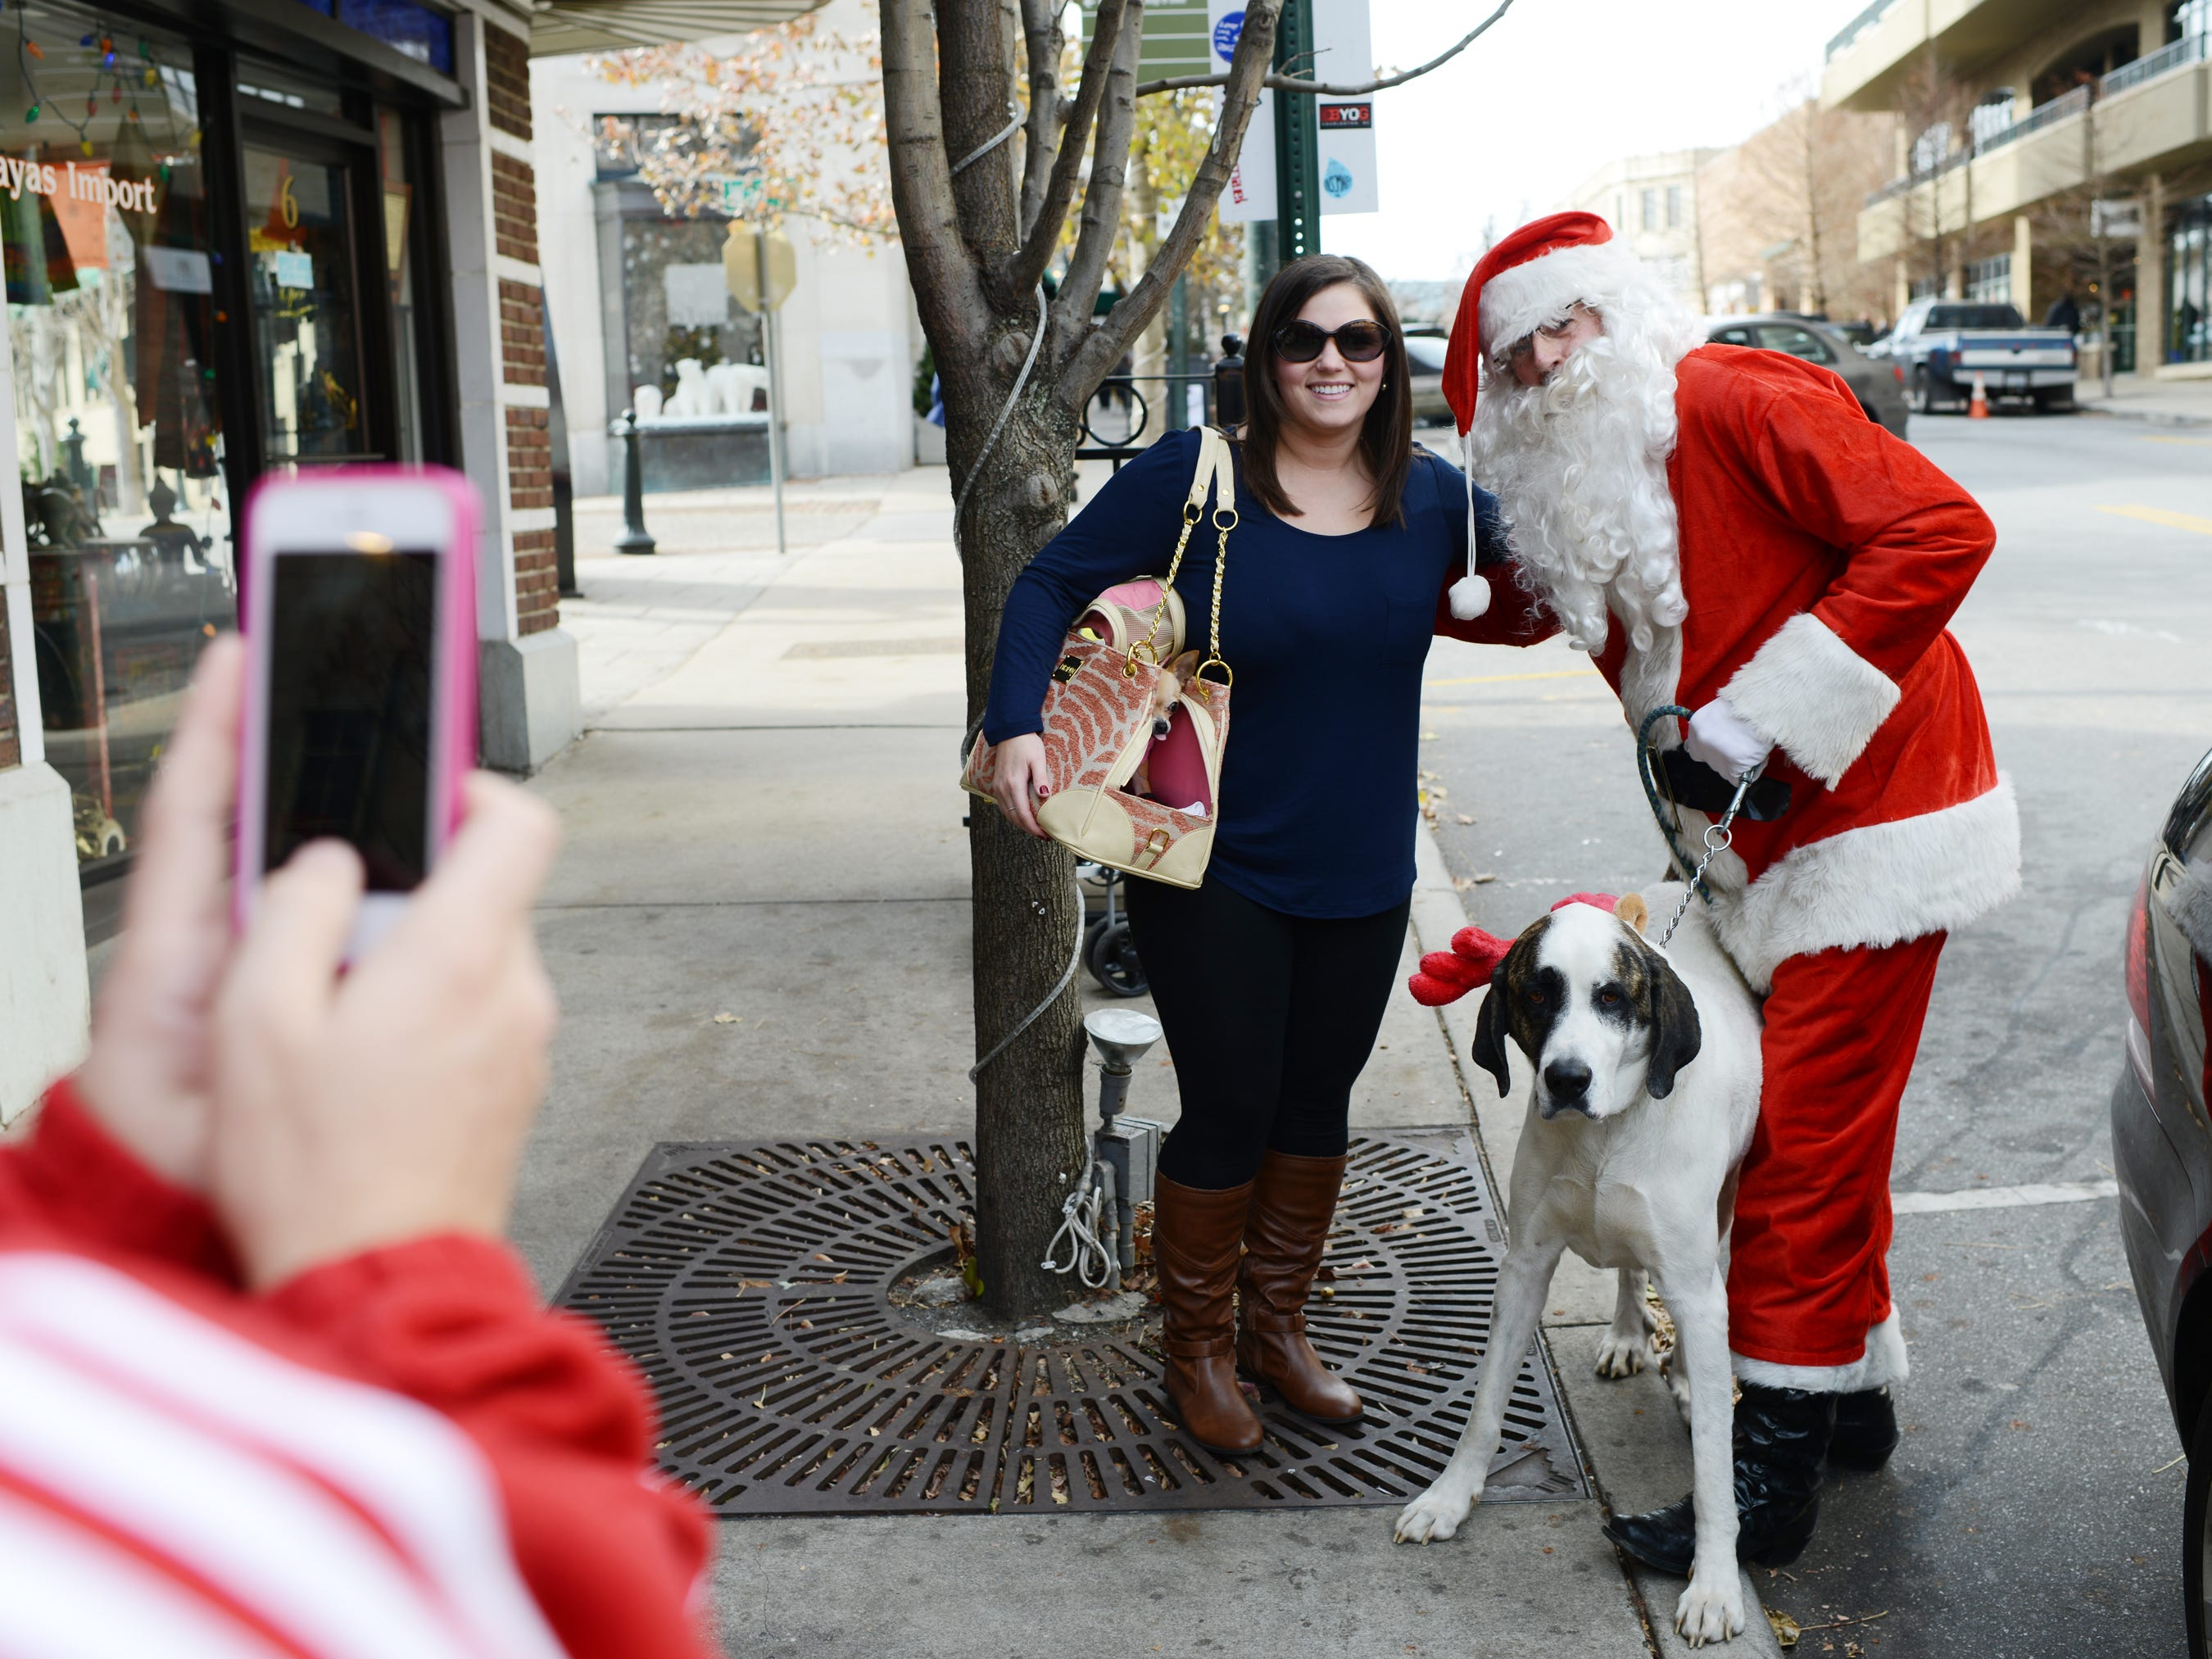 "Perry Francis makes his way through downtown dressed as Santa Claus with his dog Rowan in tow dressed as his reindeer in December 2013. Francis says he is especially happy to be spreading cheer after surviving liver cancer and getting a liver transplant last year. ""I feel blessed and have been real fortunate,"" says Francis who estimates he has been walking around ten miles a day the past week as Santa. When he and Rowan aren't walking, they're riding around town in his Studebaker Hawk."